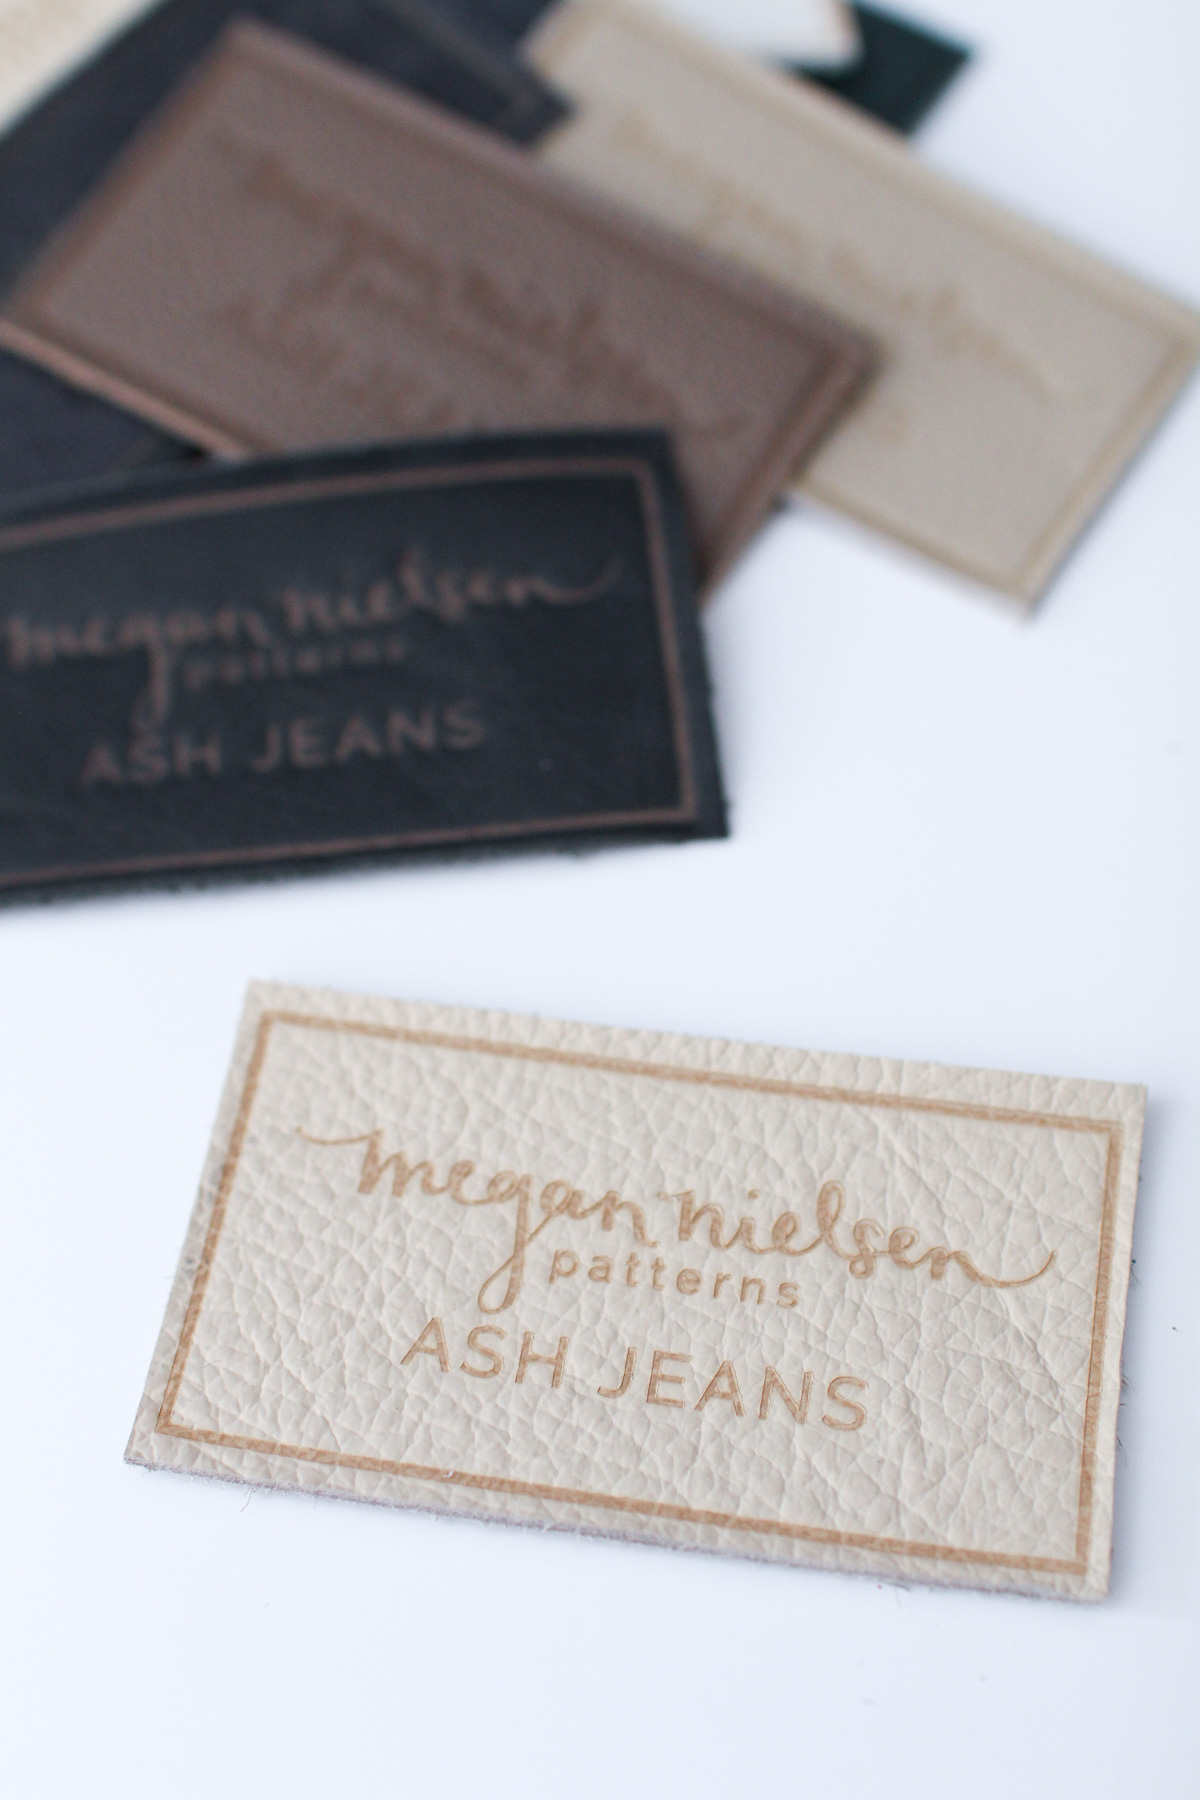 Megan Nielsen jeans notions! Kits, leather patches, rivet anvils: everything you need to make a professional looking handmade pair of jeans